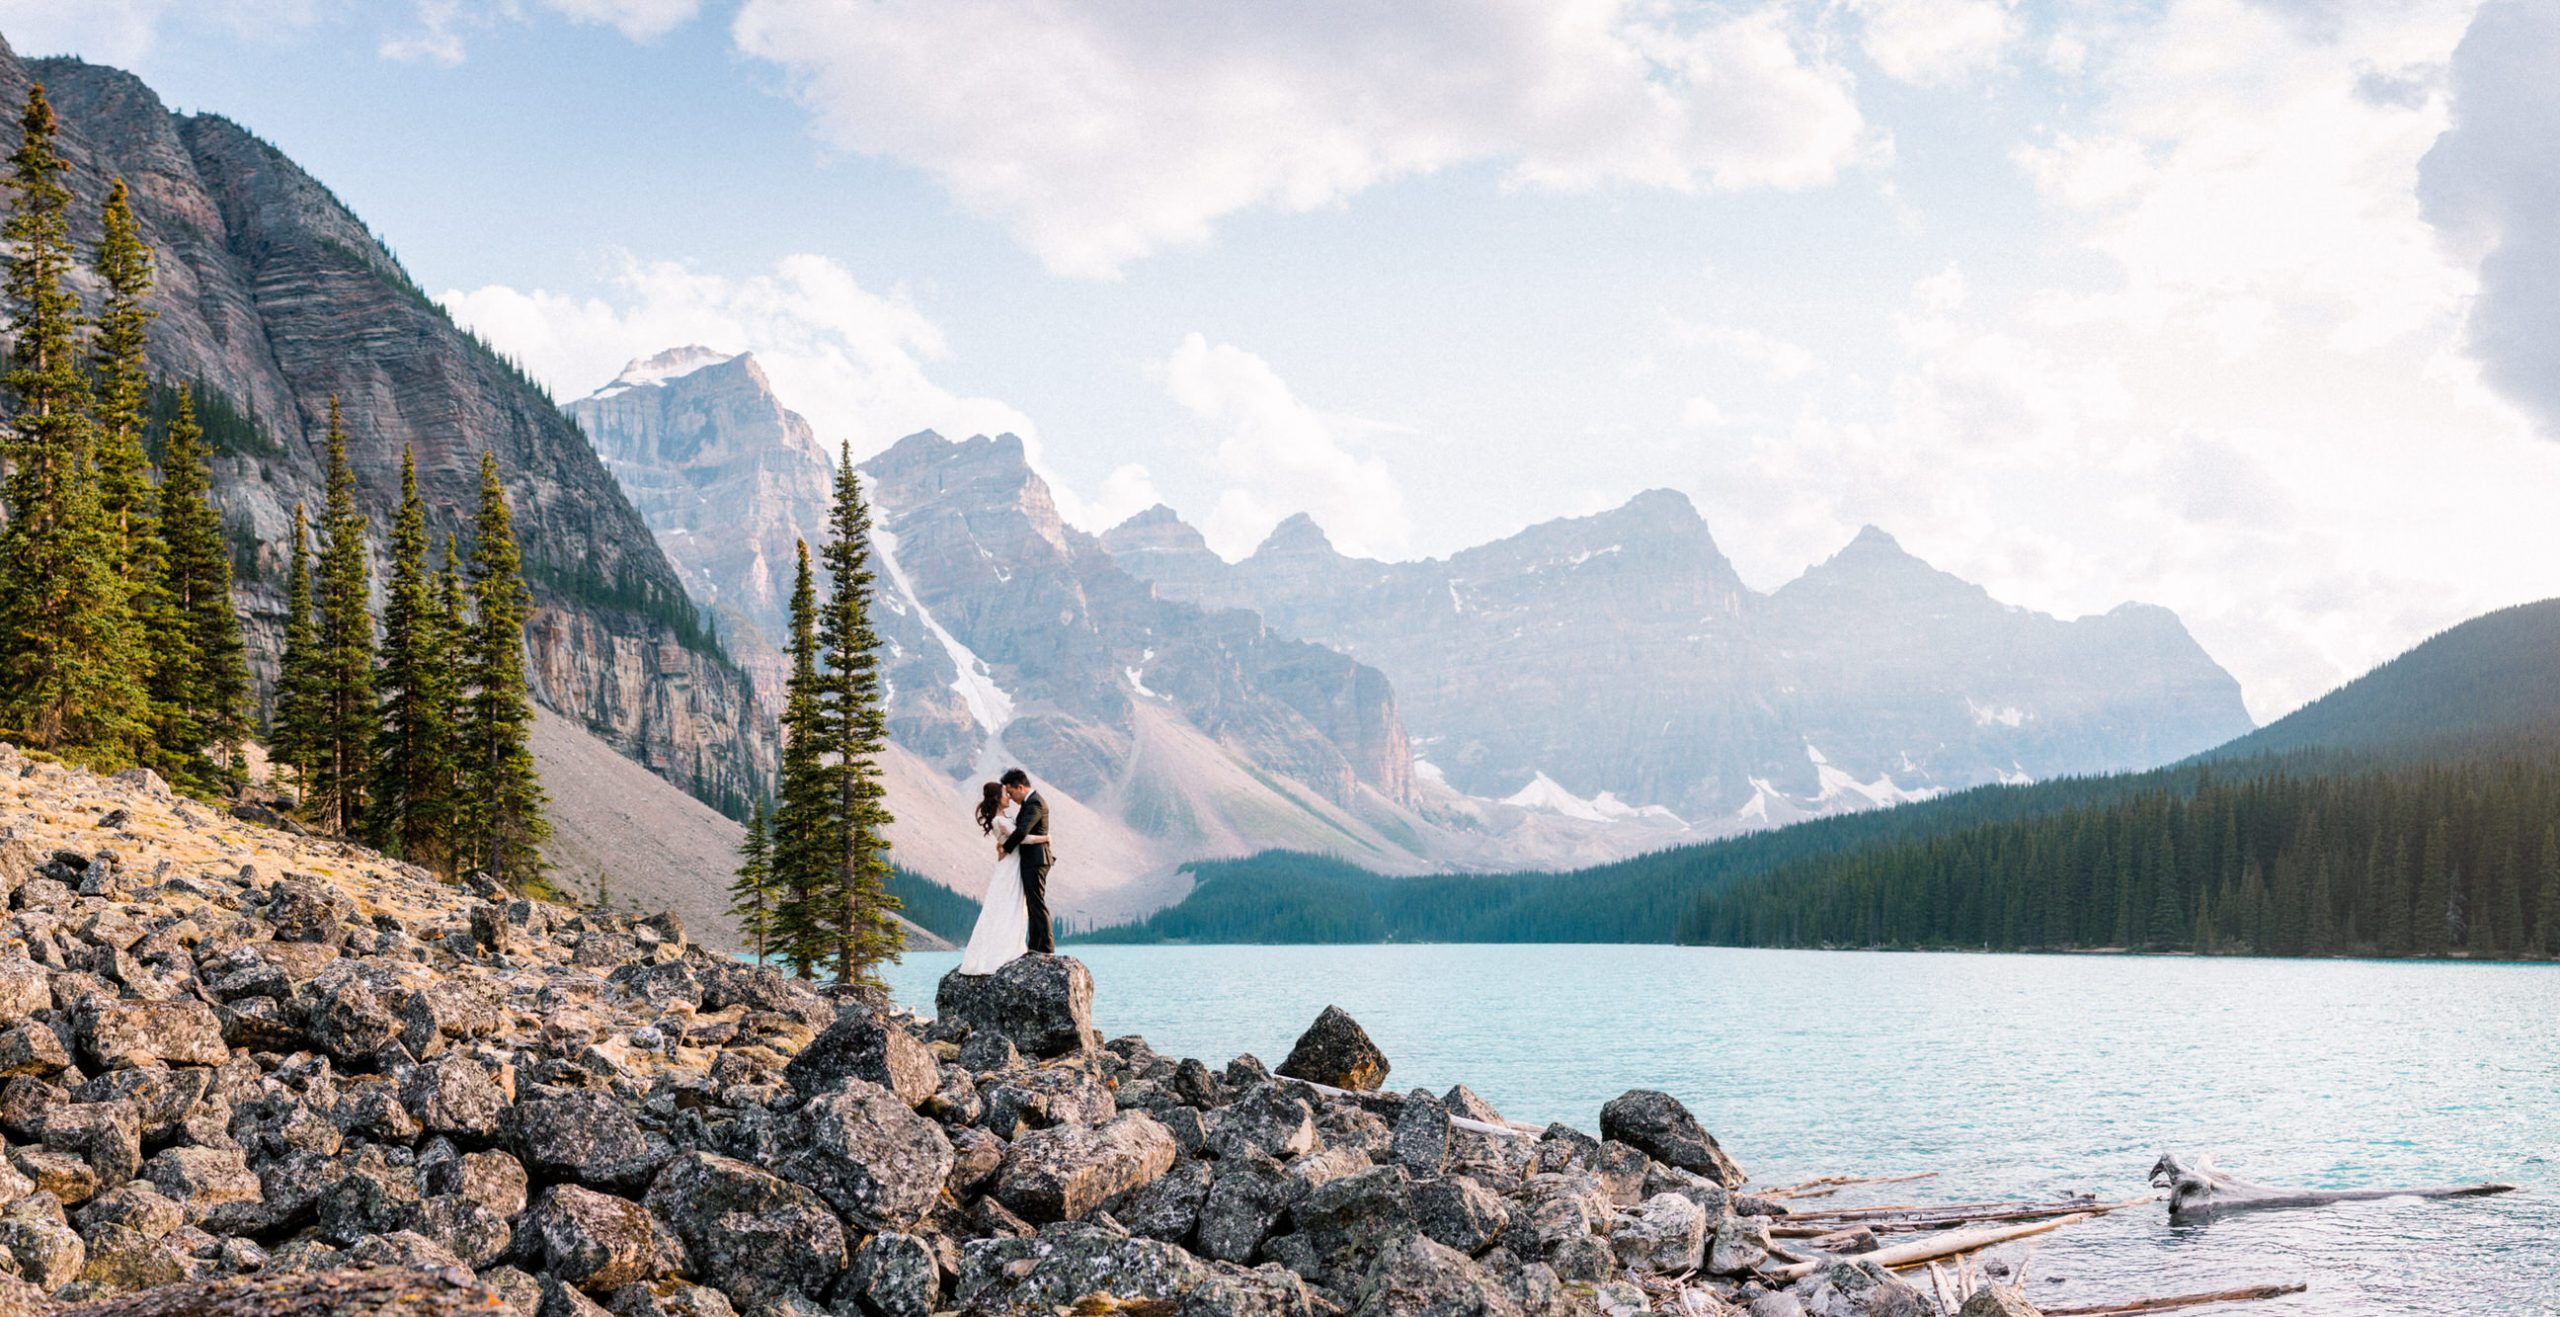 Billy and Yvonne at Moraine Lake